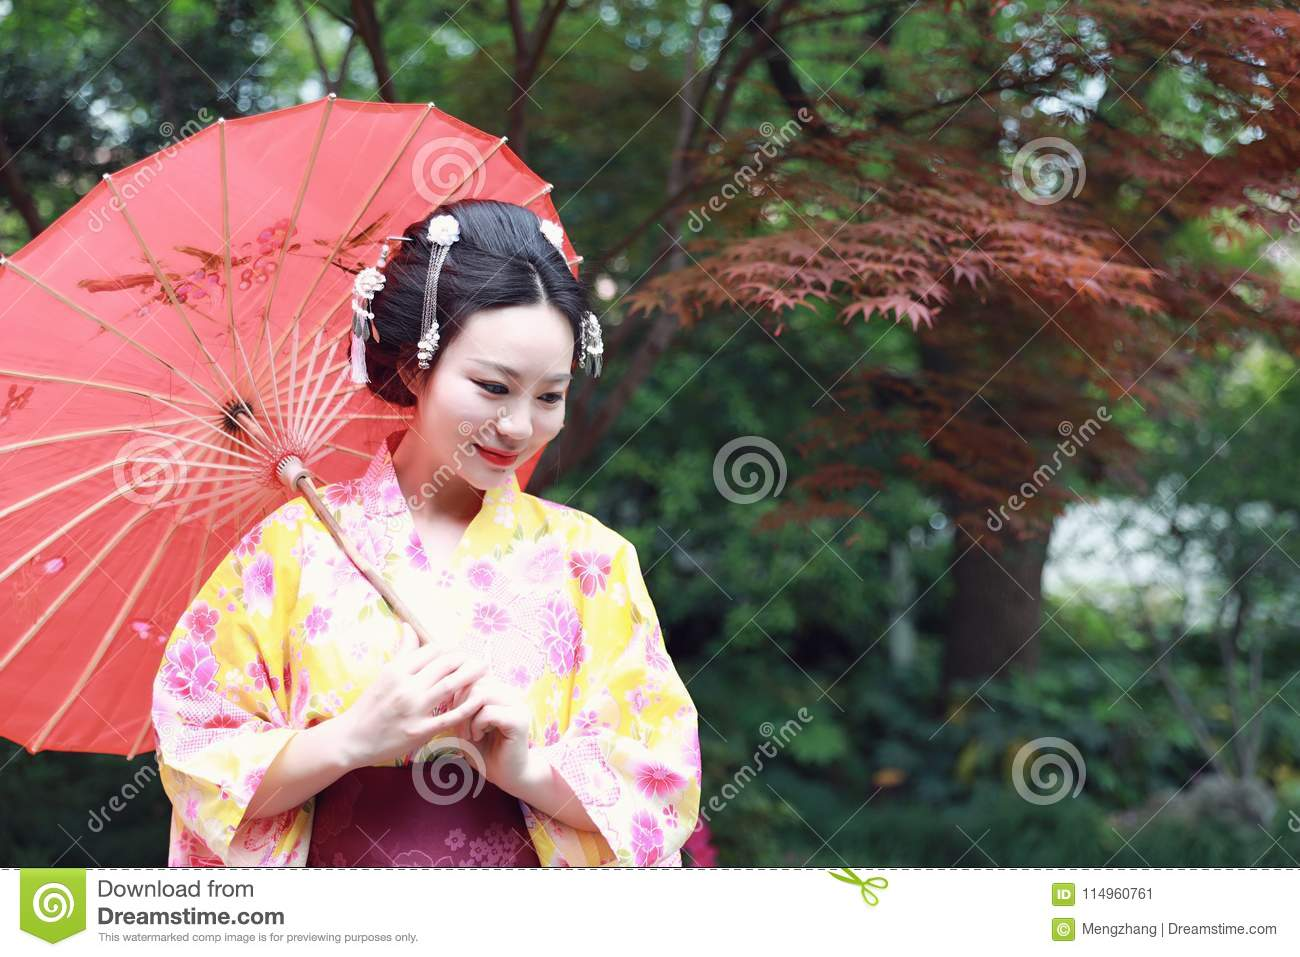 dea55e3293 Japanese woman with kimono Japanese bride smiling stand by bamboo in a  spring park Geisha with fan in the garden Asian style portrait of young  woman with ...